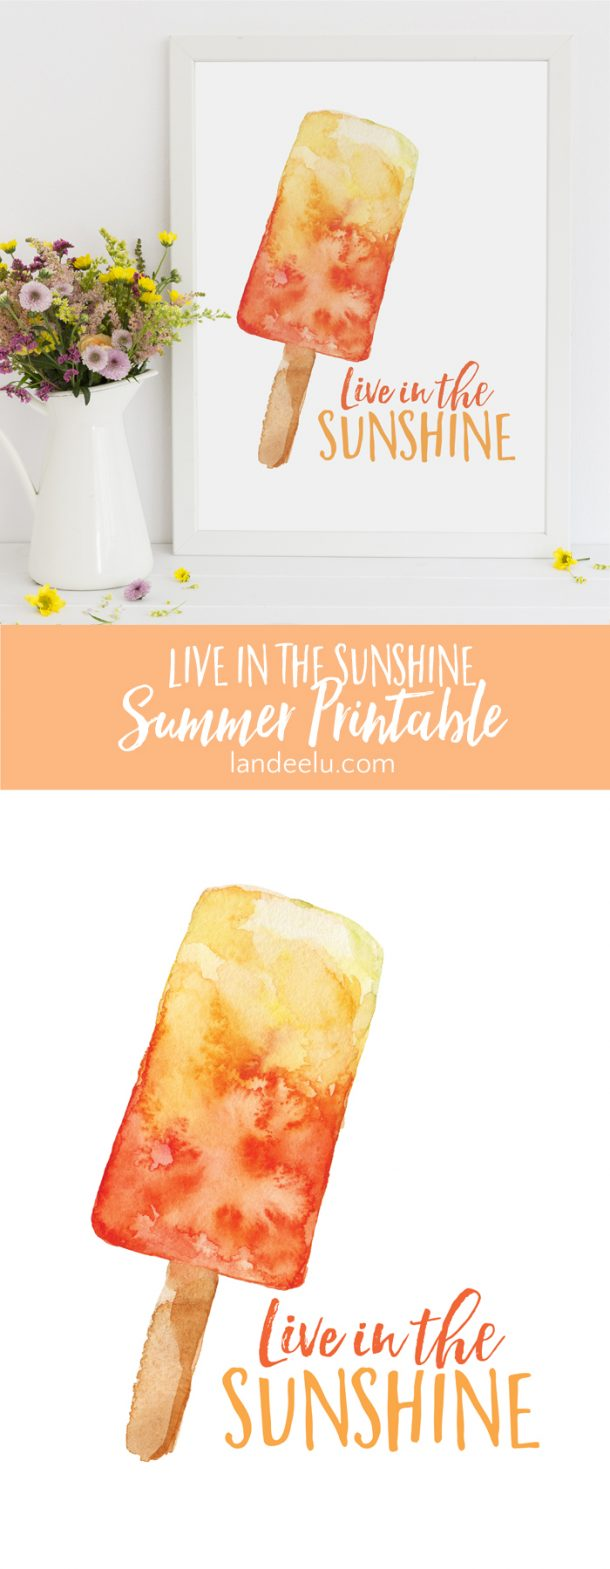 Download this free summer printable and LIVE IN THE SUNSHINE this summer! Cute watercolor popsicle.